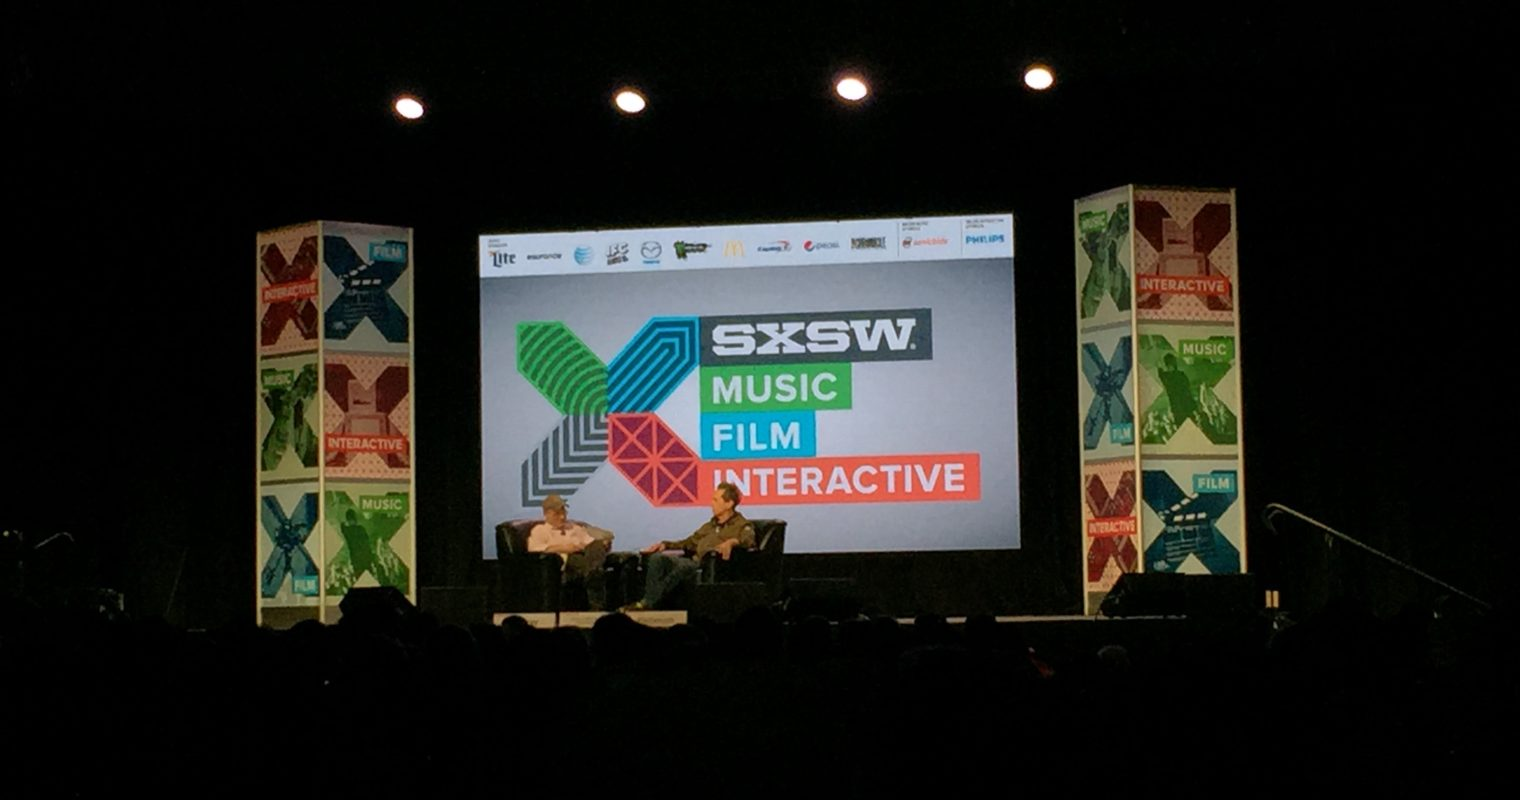 Brian Grazer on The Benefits of A Curious Mind: #SXSW 2015 Recap